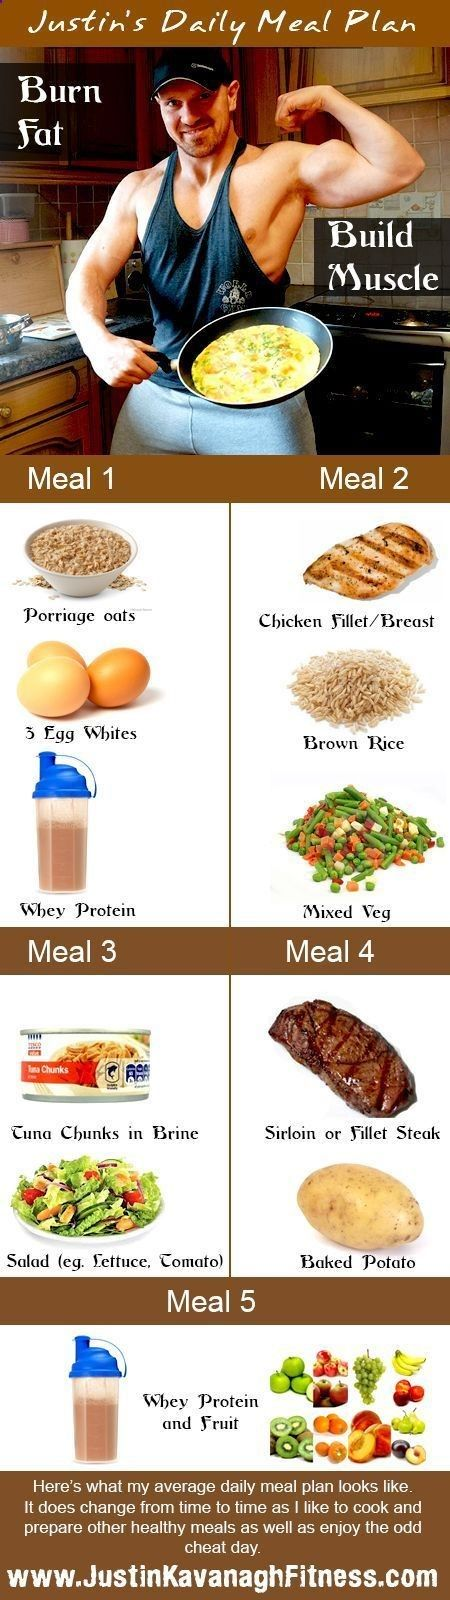 2 Week Diet Plan - My ultimate muscle gain meal plan or muscle meal plan ideal for women and men alike - A Foolproof, Science-Based System thats Guaranteed to Melt Away All Your Unwanted Stubborn Body Fat in Just 14 Days...No Matter How Hard You've Tried Before!